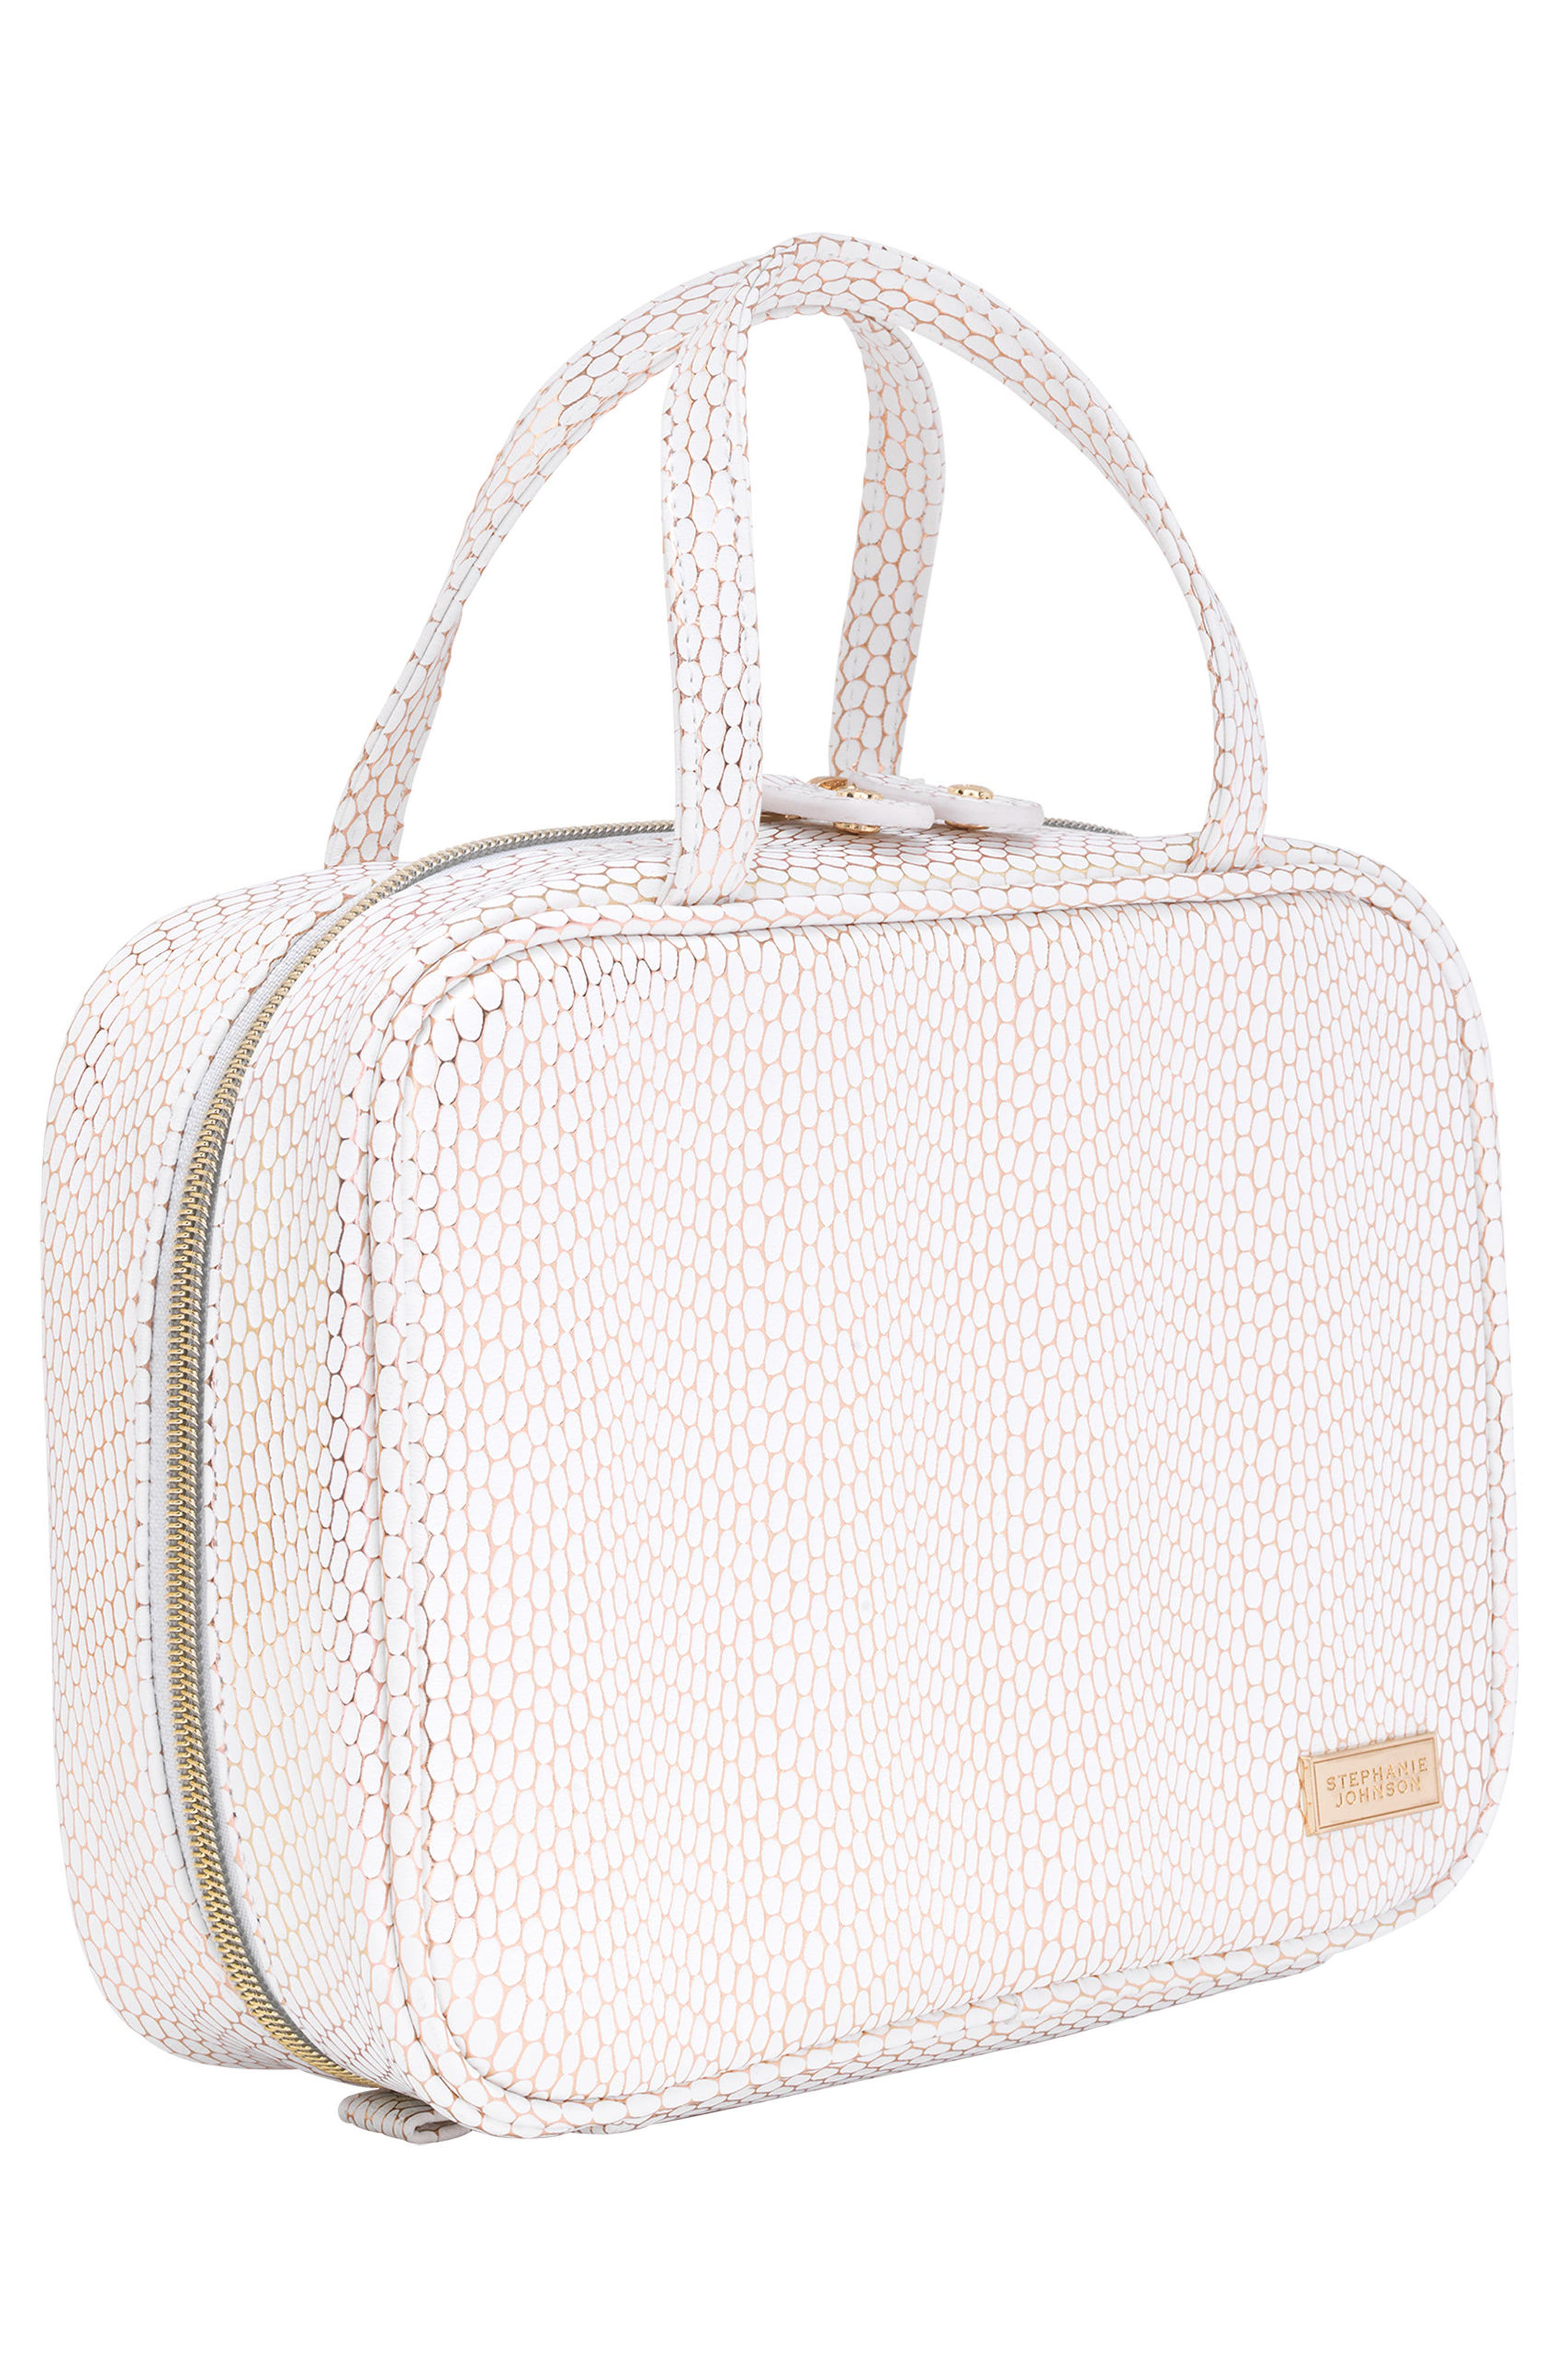 Havana Traveler Cosmetics Case,                             Alternate thumbnail 4, color,                             WHITE